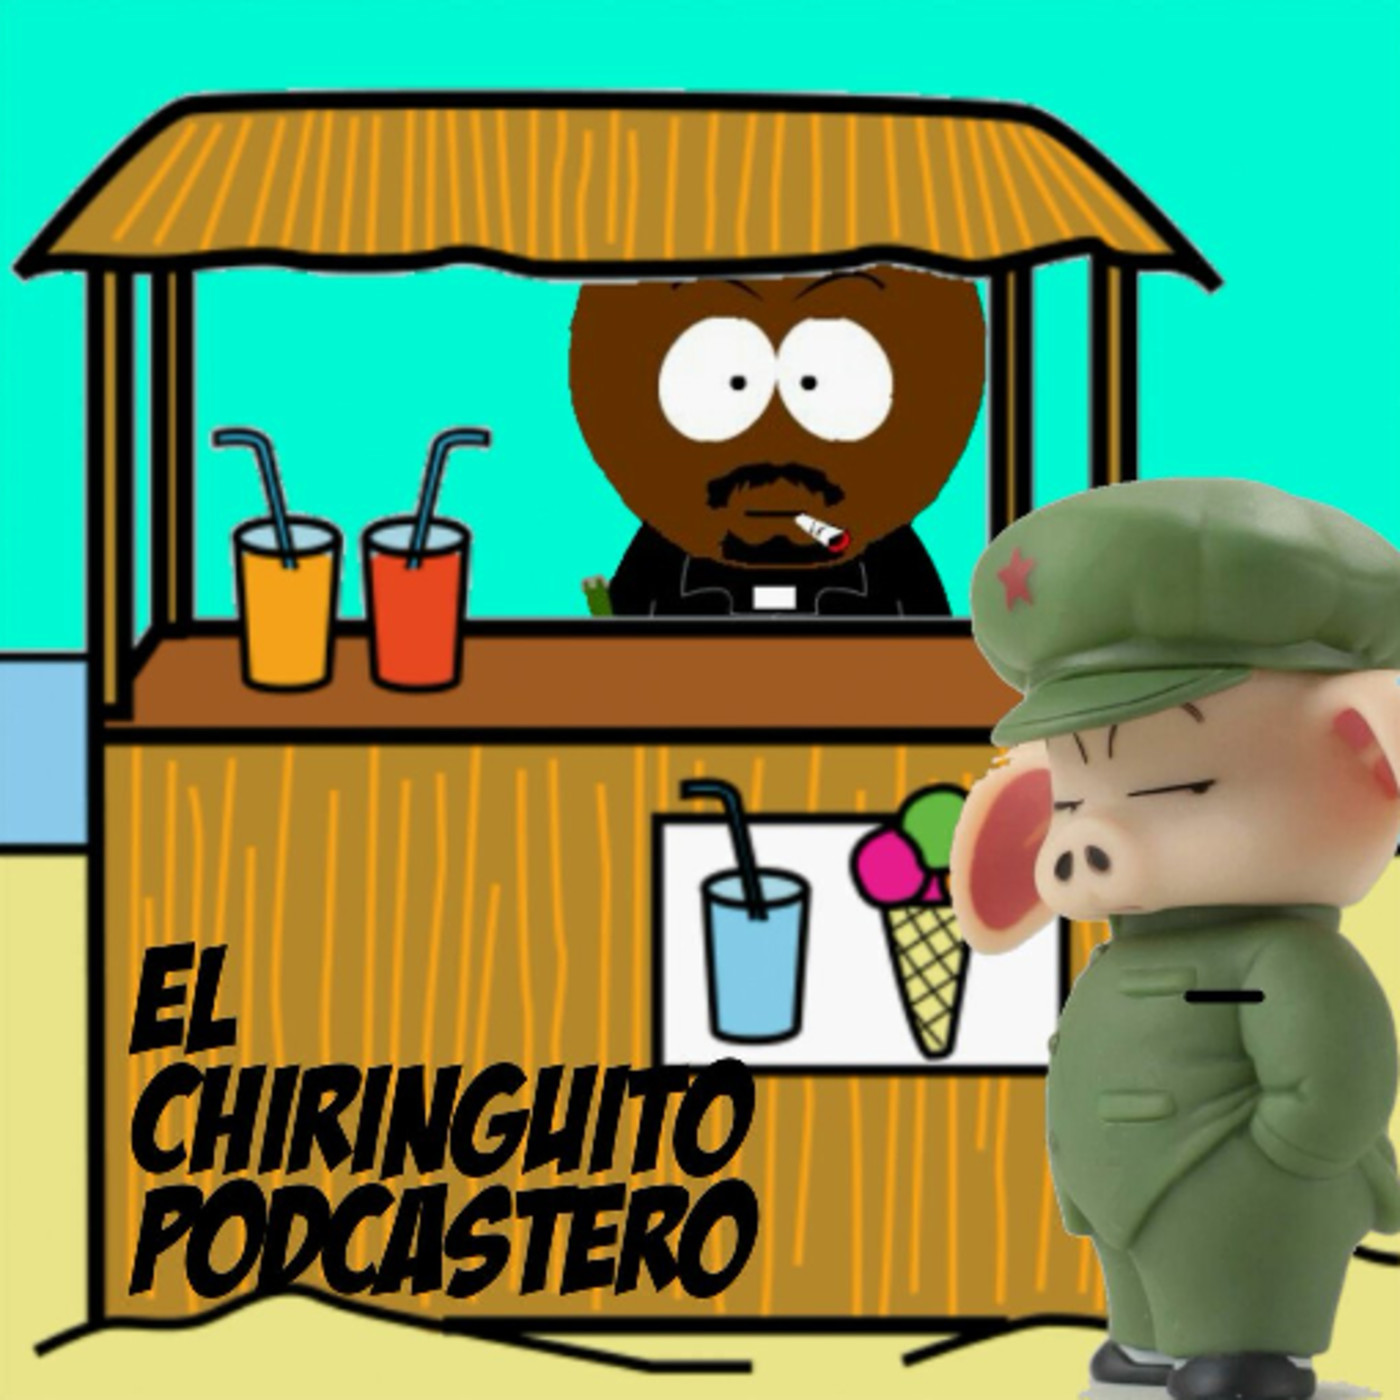 Logo de El Chiringuito Podcastero